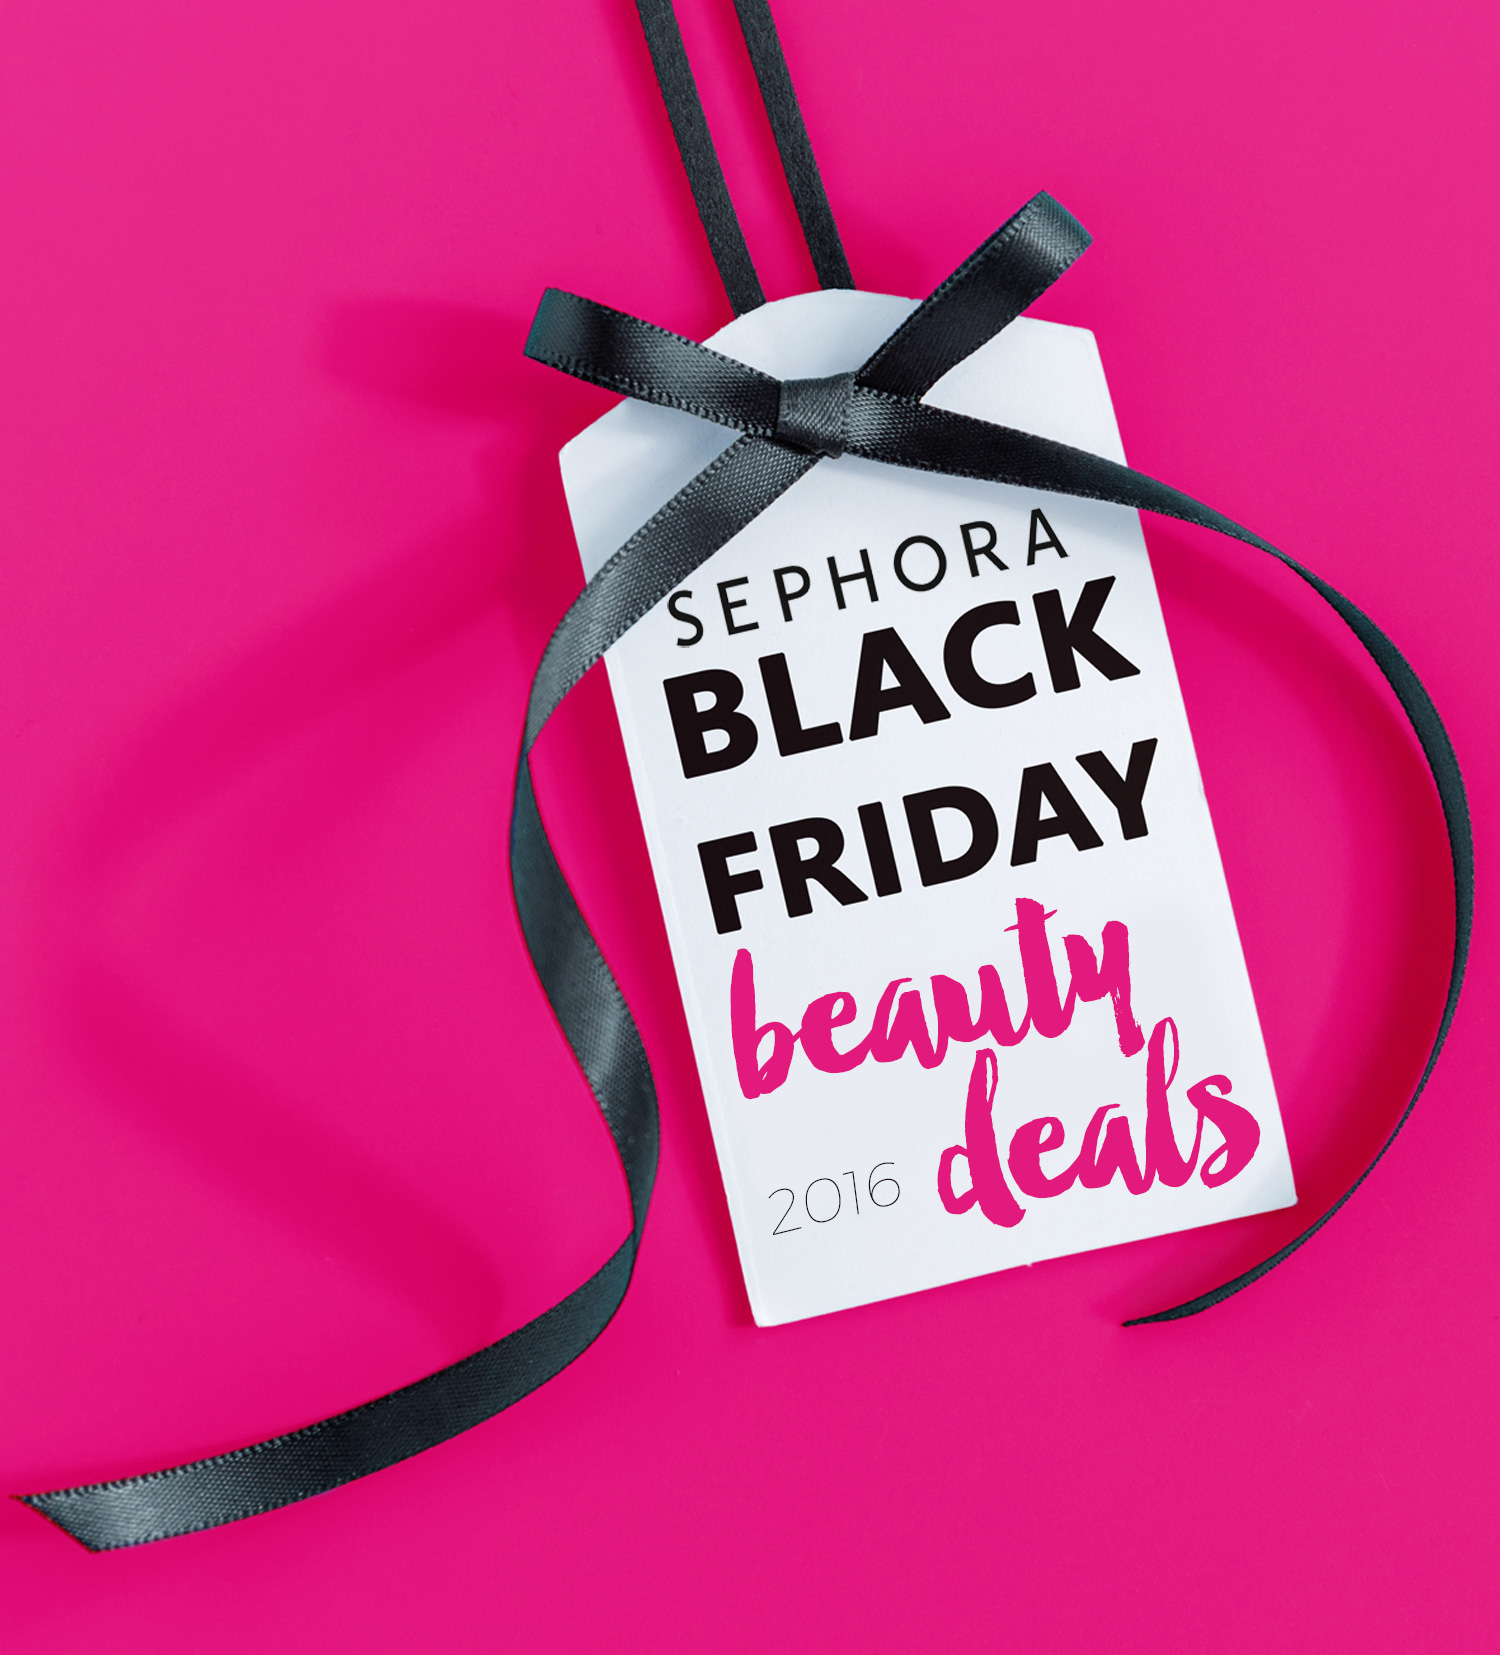 Sephora Black Friday Beauty Deals 2016 - All the $10 Deals + Other Exclusives PLUS Shopping Tips